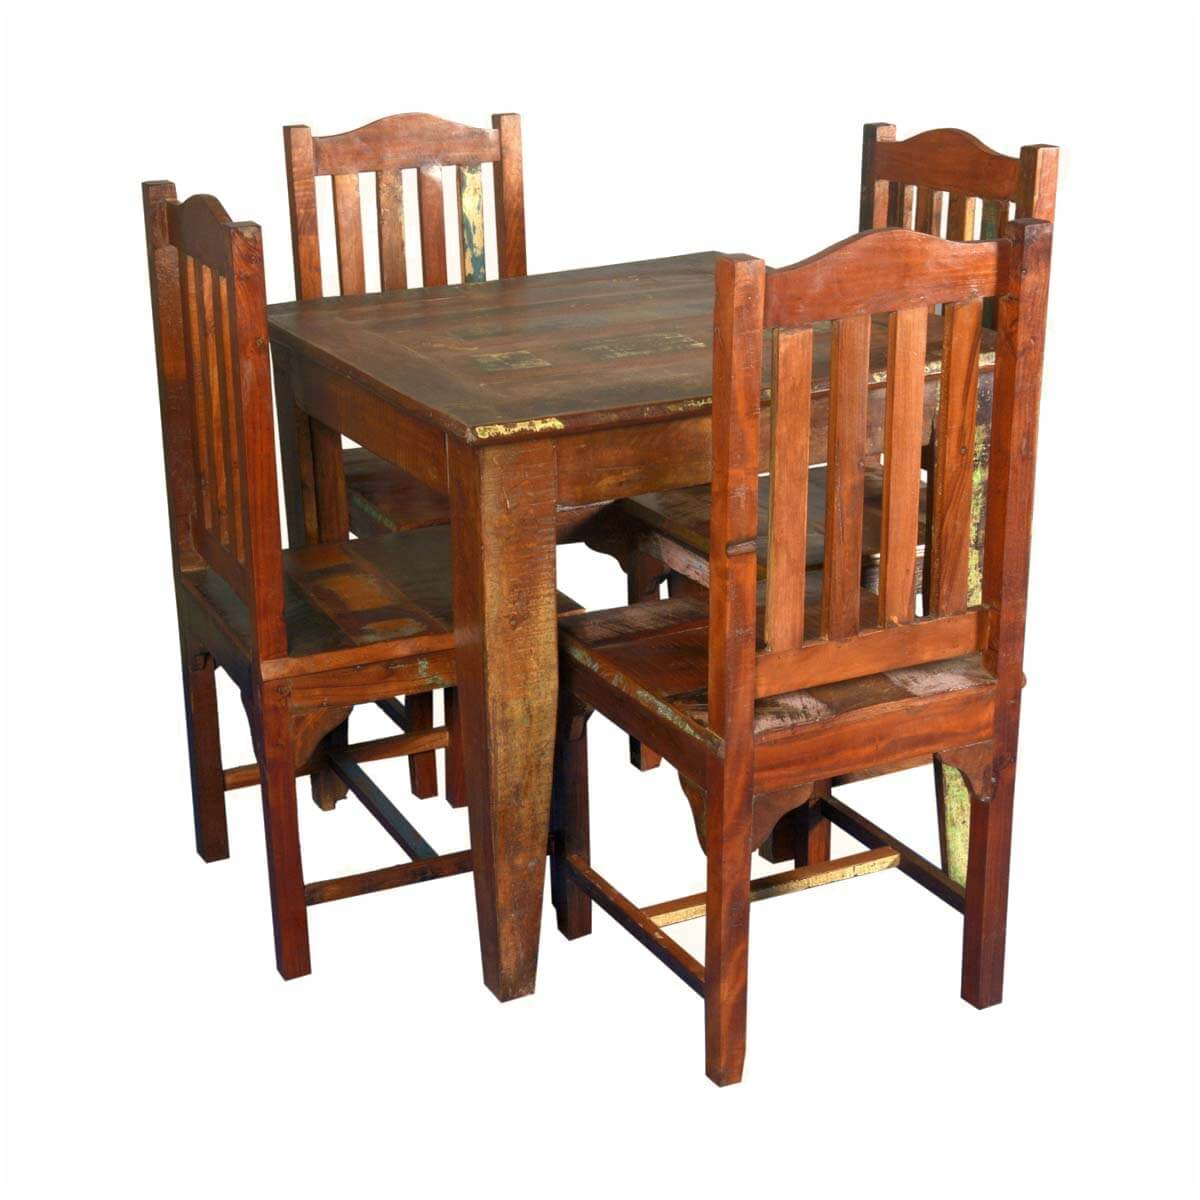 Small wooden table and two chairs small reclaimed wood for Small wooden dining table set